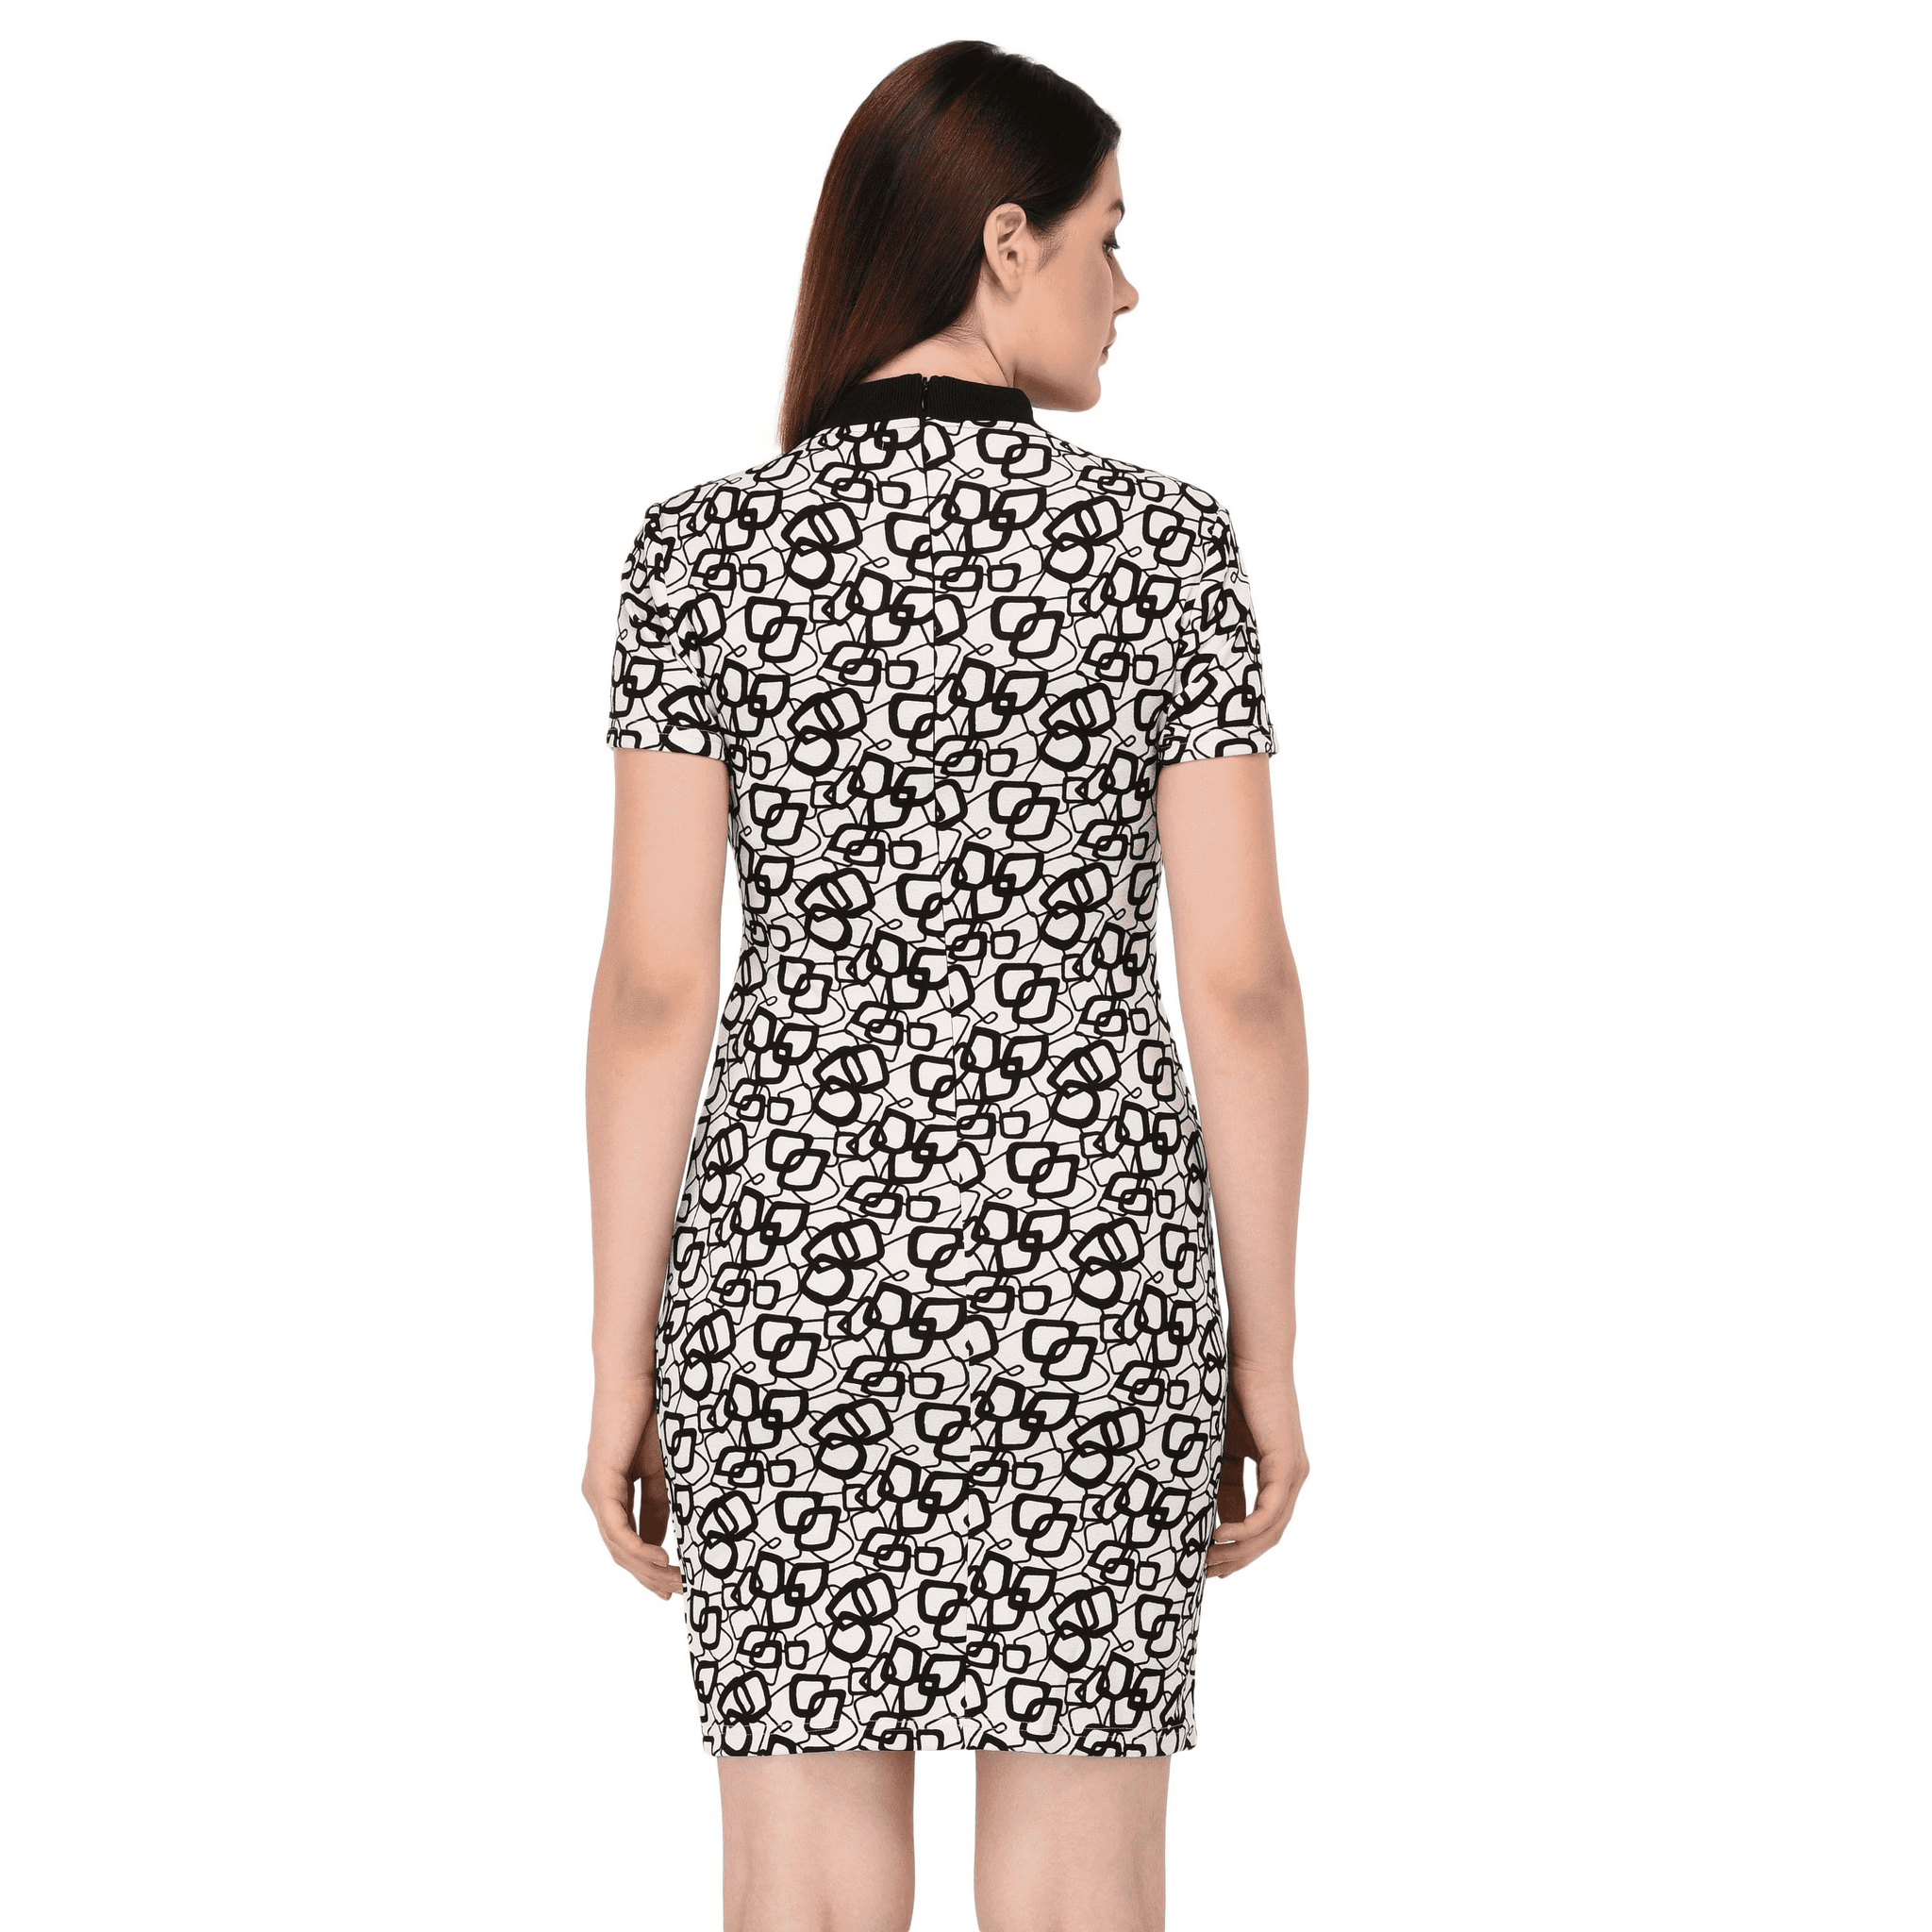 Printed Rib Detailed Dress White - NIXX Clothing